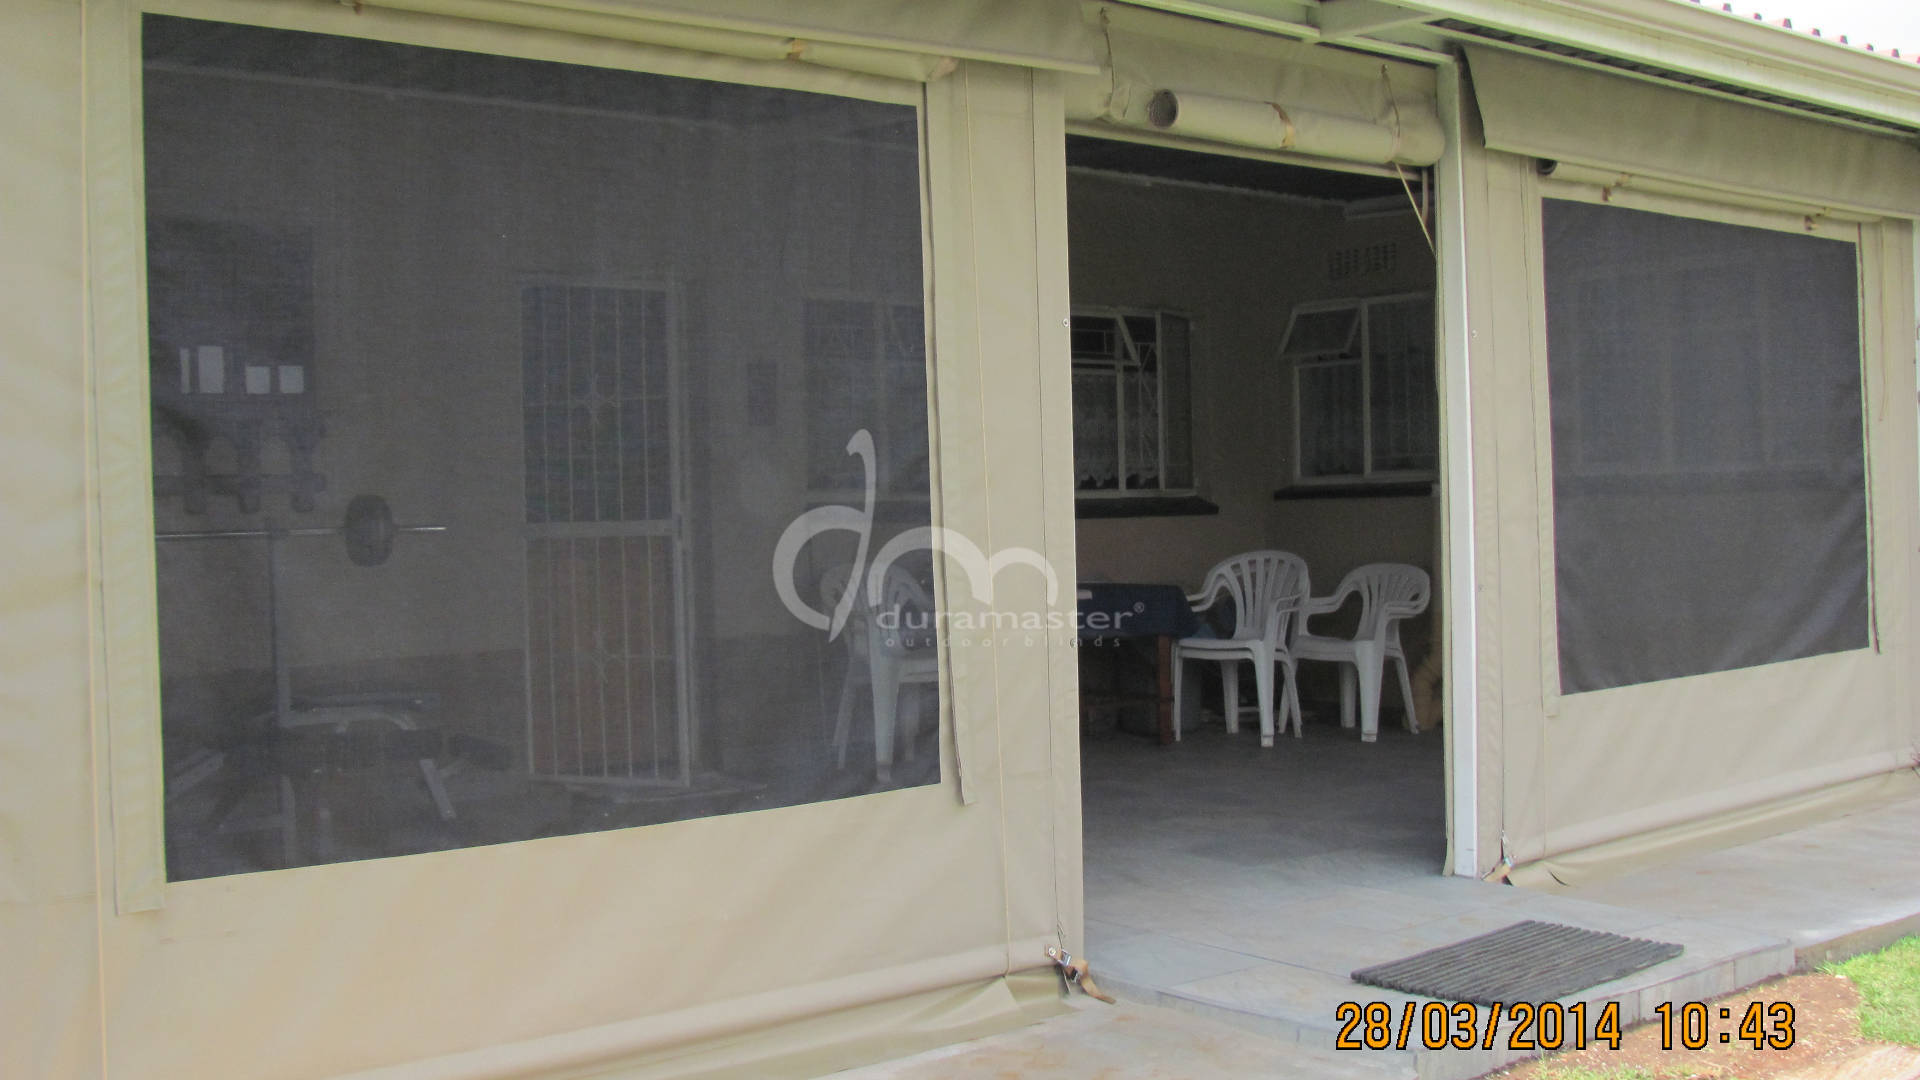 Duramaster outdoor duramaster photo gallery for Exterior window shutters south africa